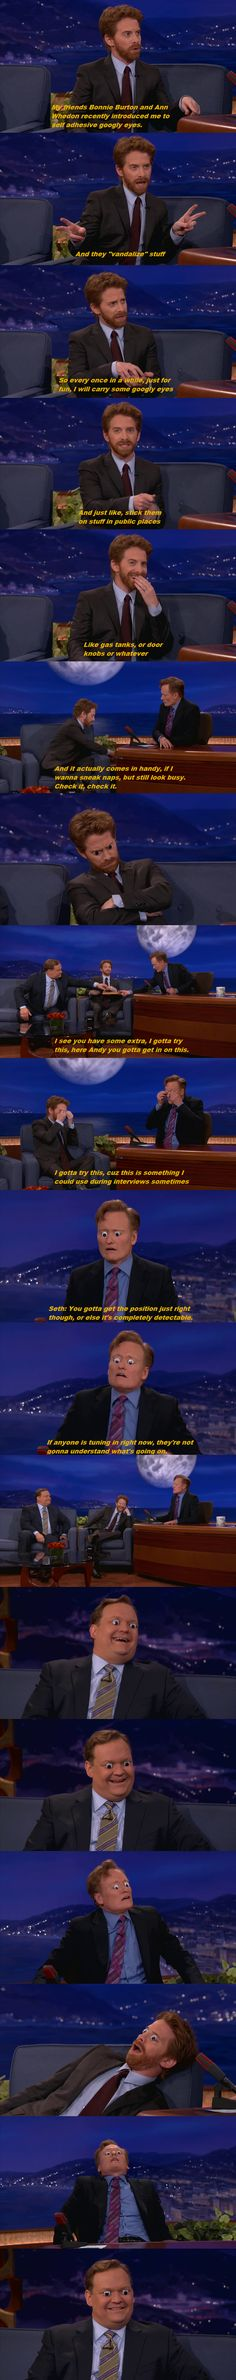 Why is this so hysterical?! Seth Green, Conan and Andy with the googly eyes. this is the best!!